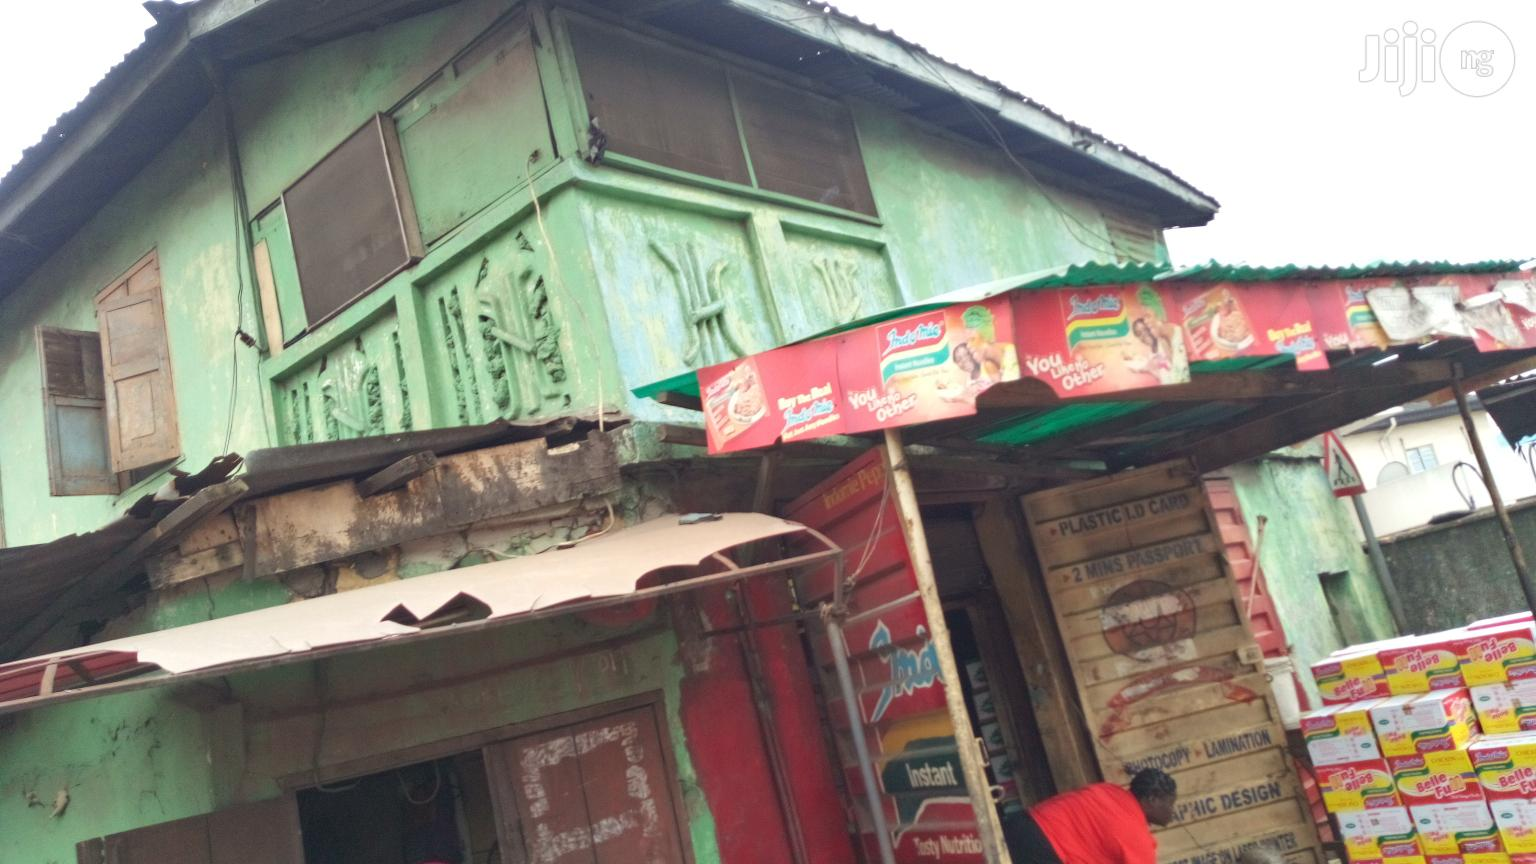 Commercial Property For Sale At Fadeyi Lagos